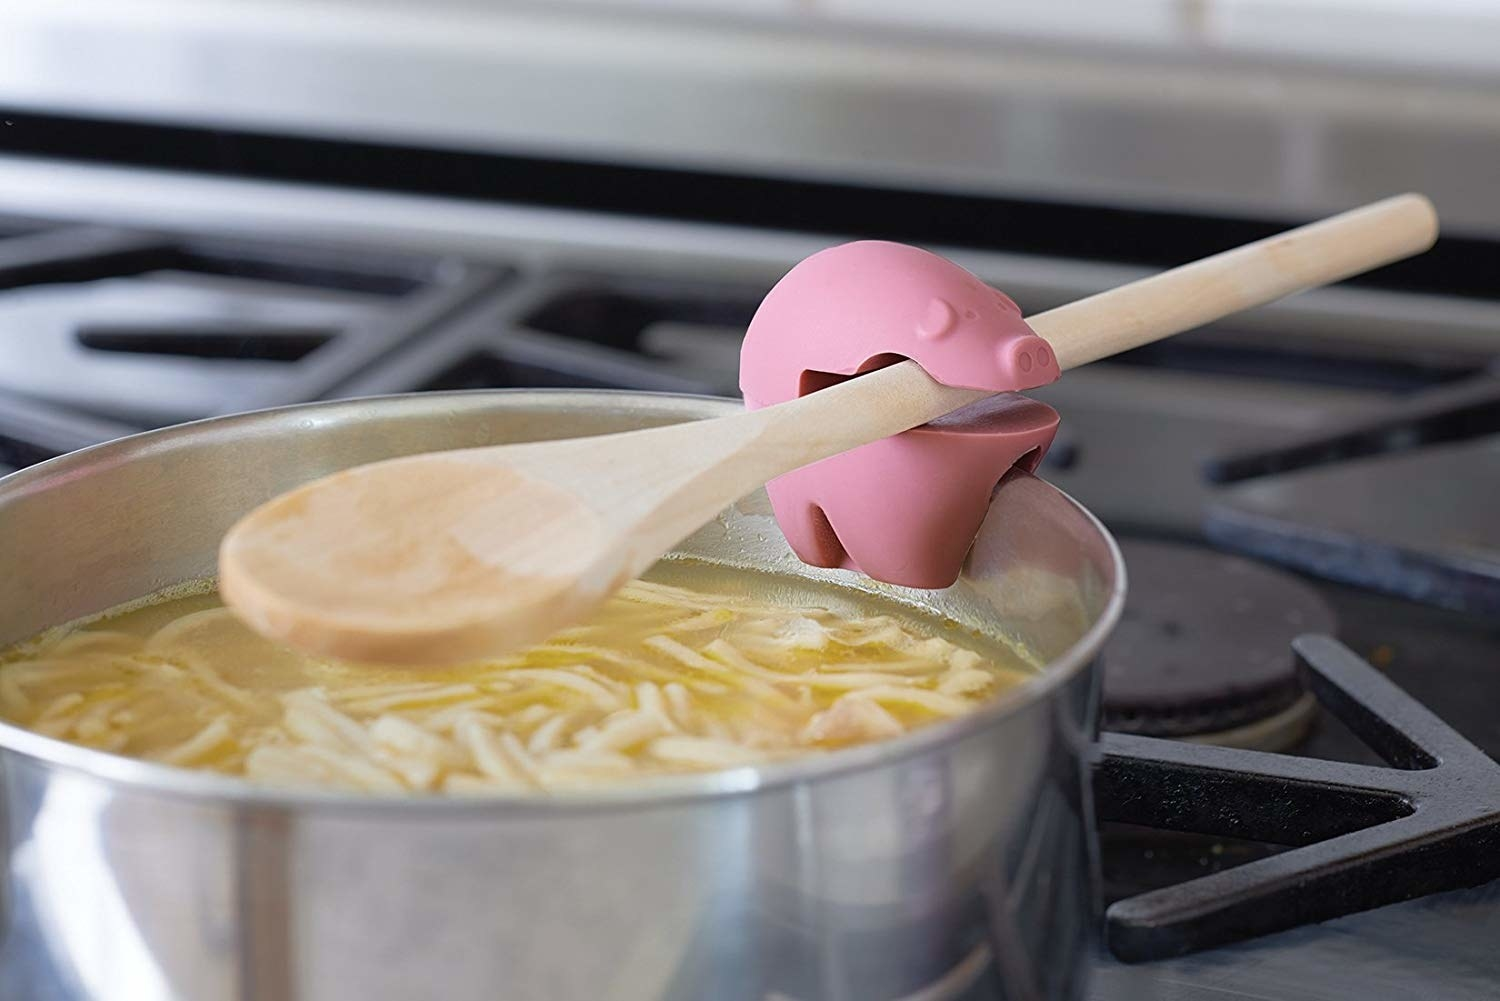 A pig-shaped utensil holder clamped over a pot full of soup and pasta A wooden spoon is sitting the pig's mouth